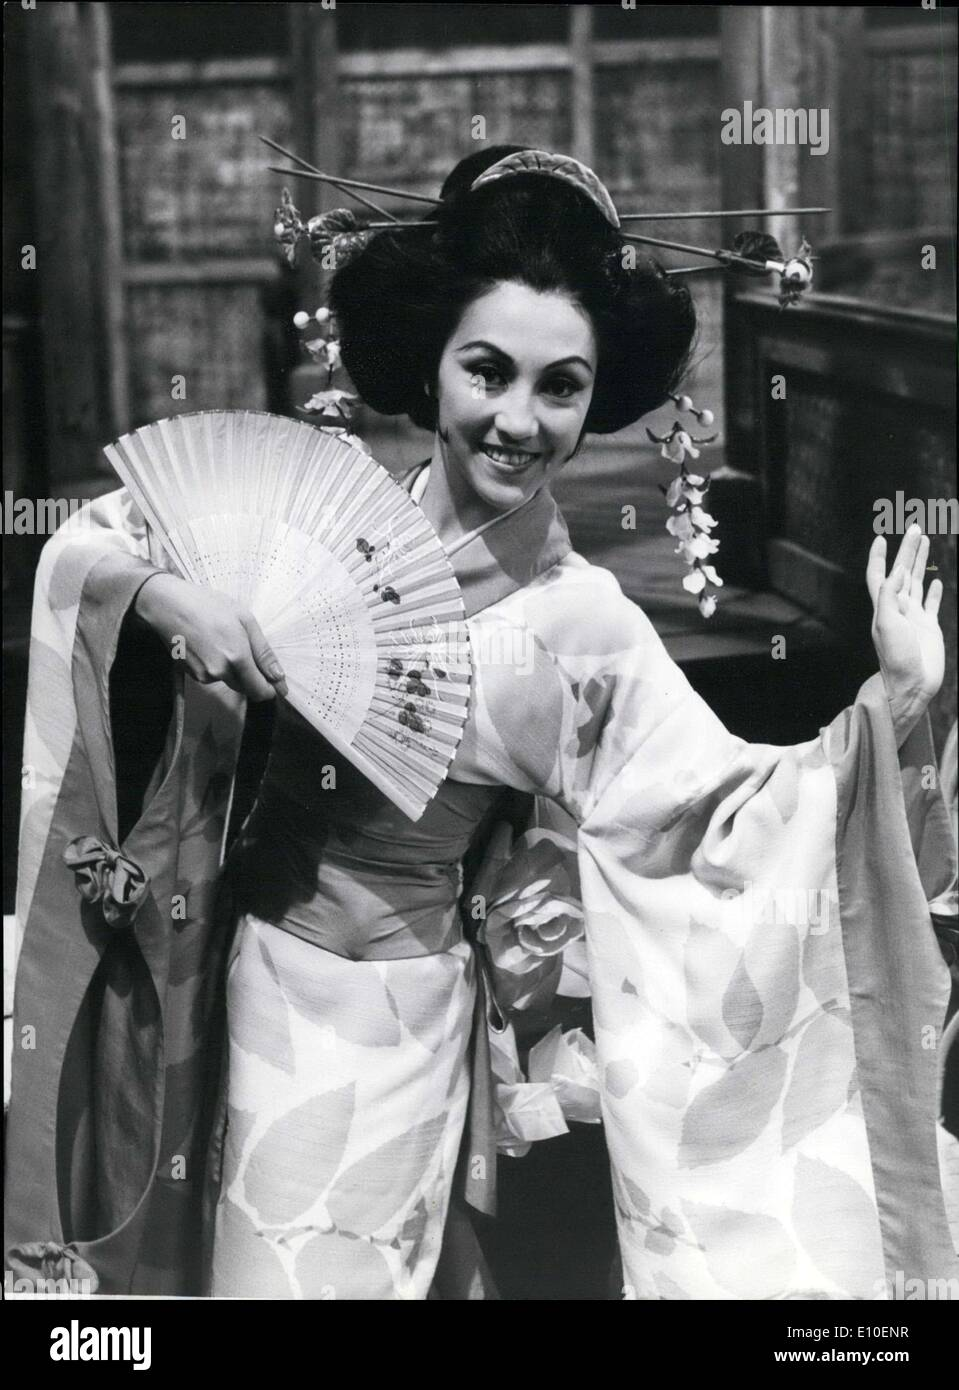 Aug. 11, 1972 - A dancer of a ZDF ballet who married prince is currently in ''The Geisha,'' for the last time before the camera. ''How do I angle me a prince?''.. is not a question anymore for the graceful dancer Chesternina Sim-Zecha. She now has him...and he is only waiting on her so they can return home ''to his kingdom.'' The mixed, Dutch-Chinese 25 year old born in Indonesia and raised in England and Holland, is a soloist in the Stuttgart State Opera and a participant in the ZDF ballet; before long she will marry the brother of the king of Malaysia, Tunku Abdul Rahman - Stock Image